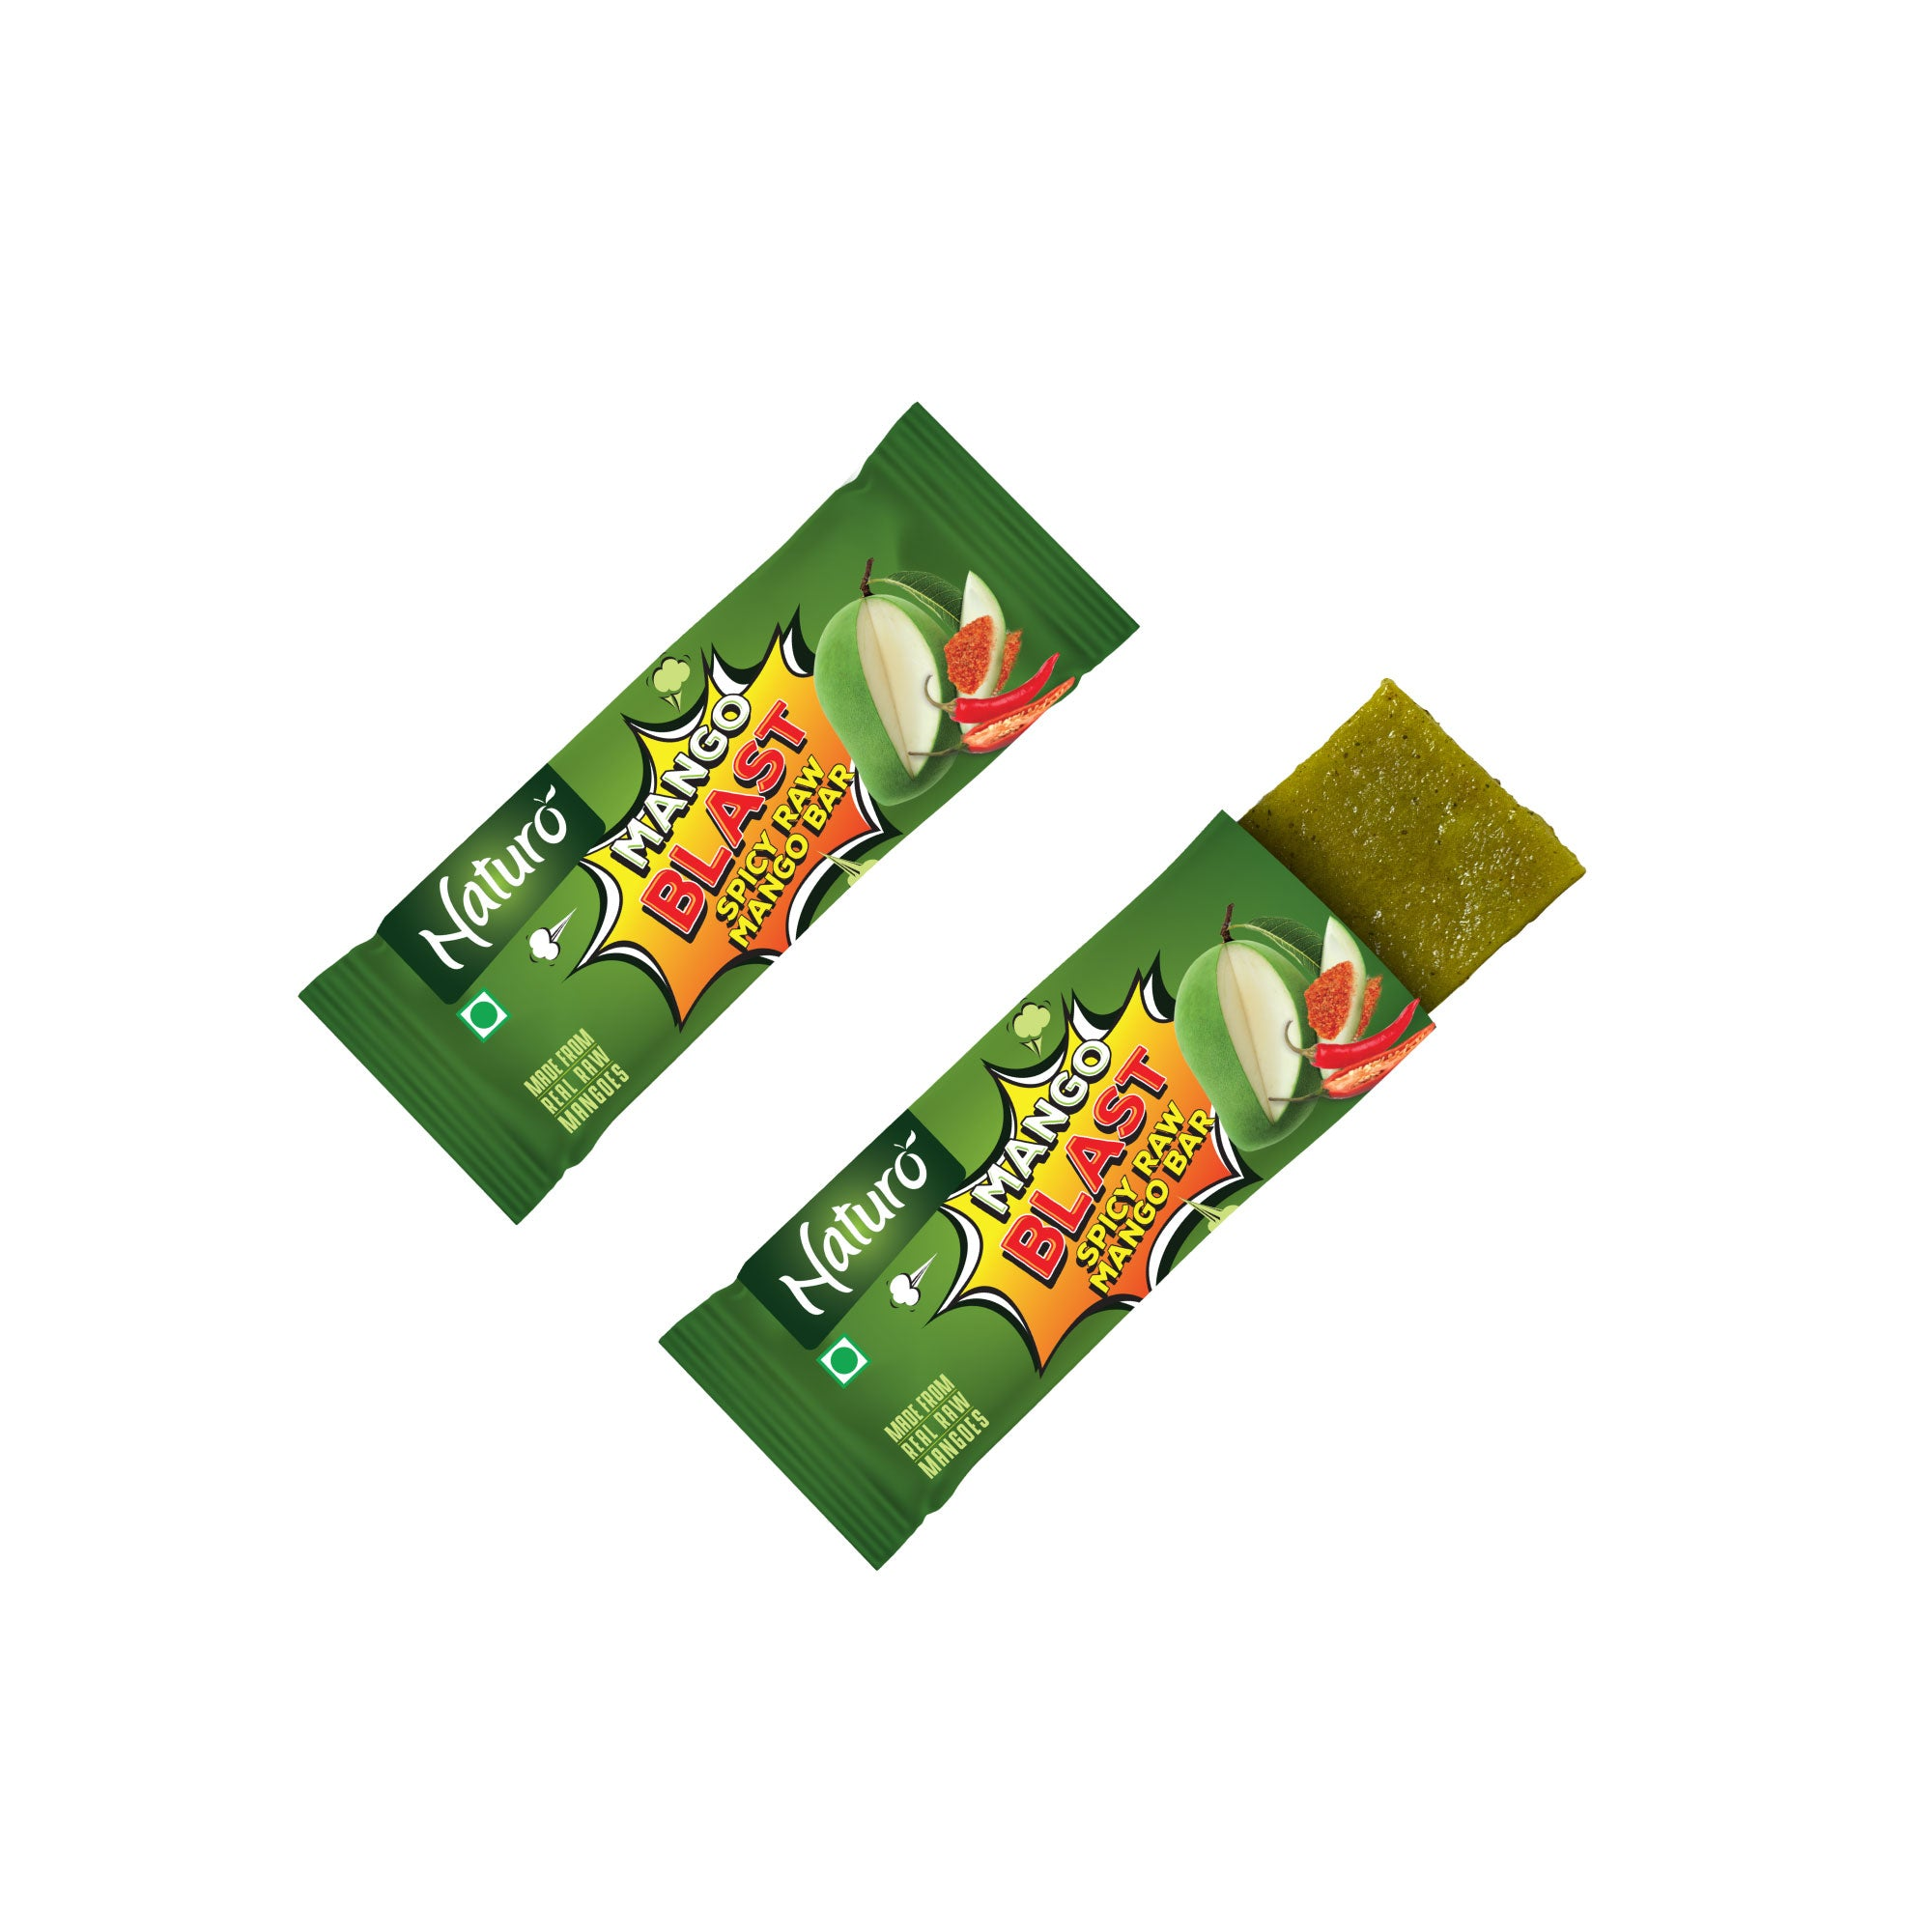 Naturo Mango Blast - Spicy Raw Mango Bar -100g